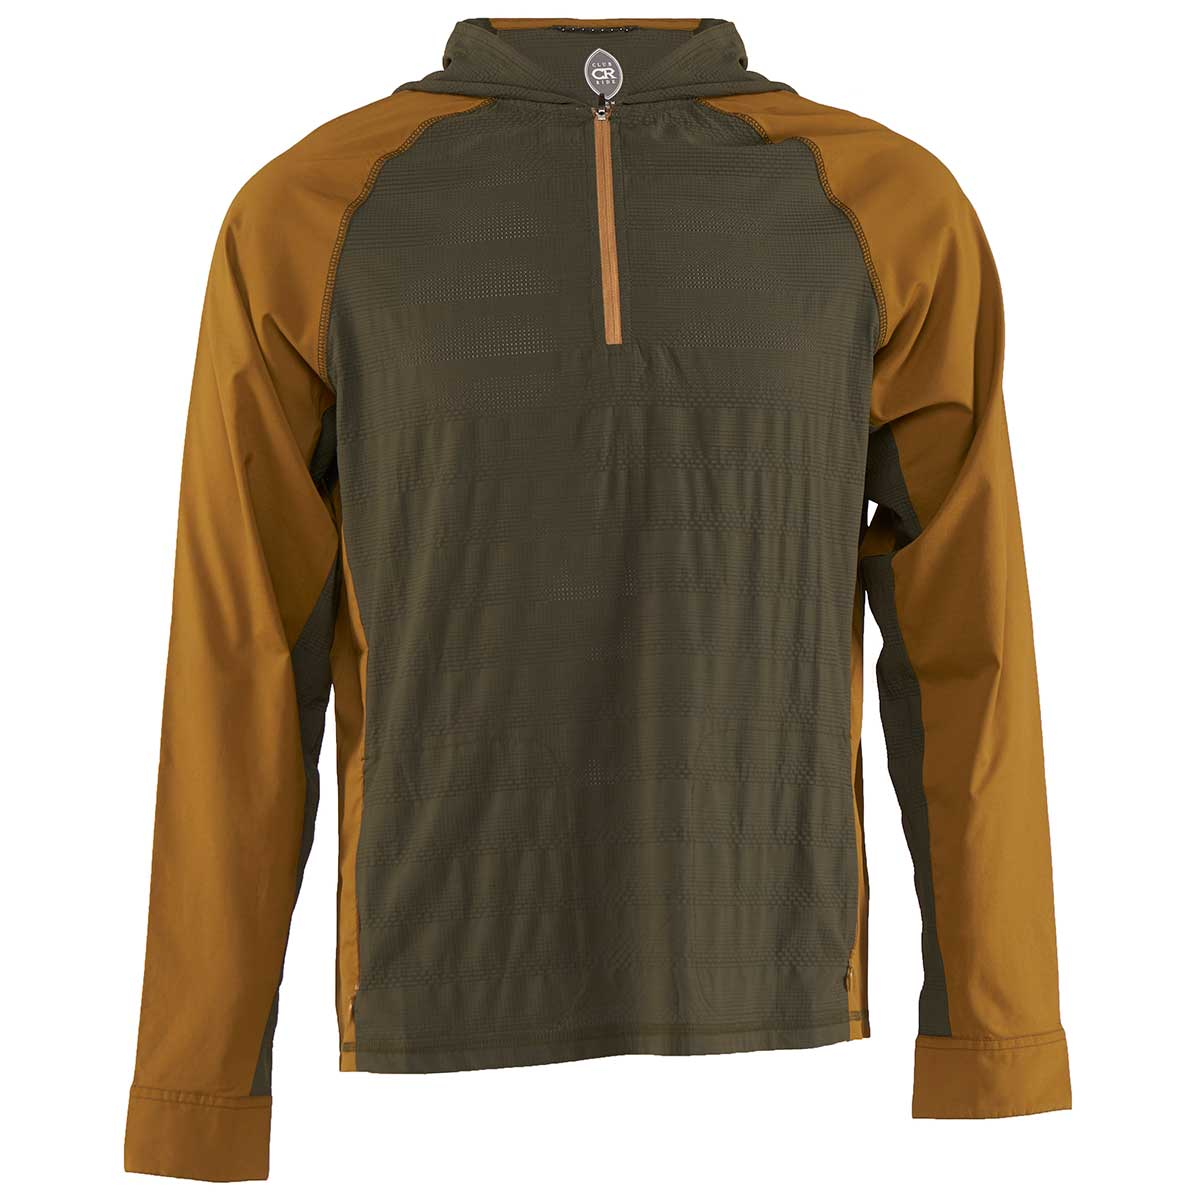 Club Ride men's Helios Sun Shirt in Dusty Olive and Tapenade